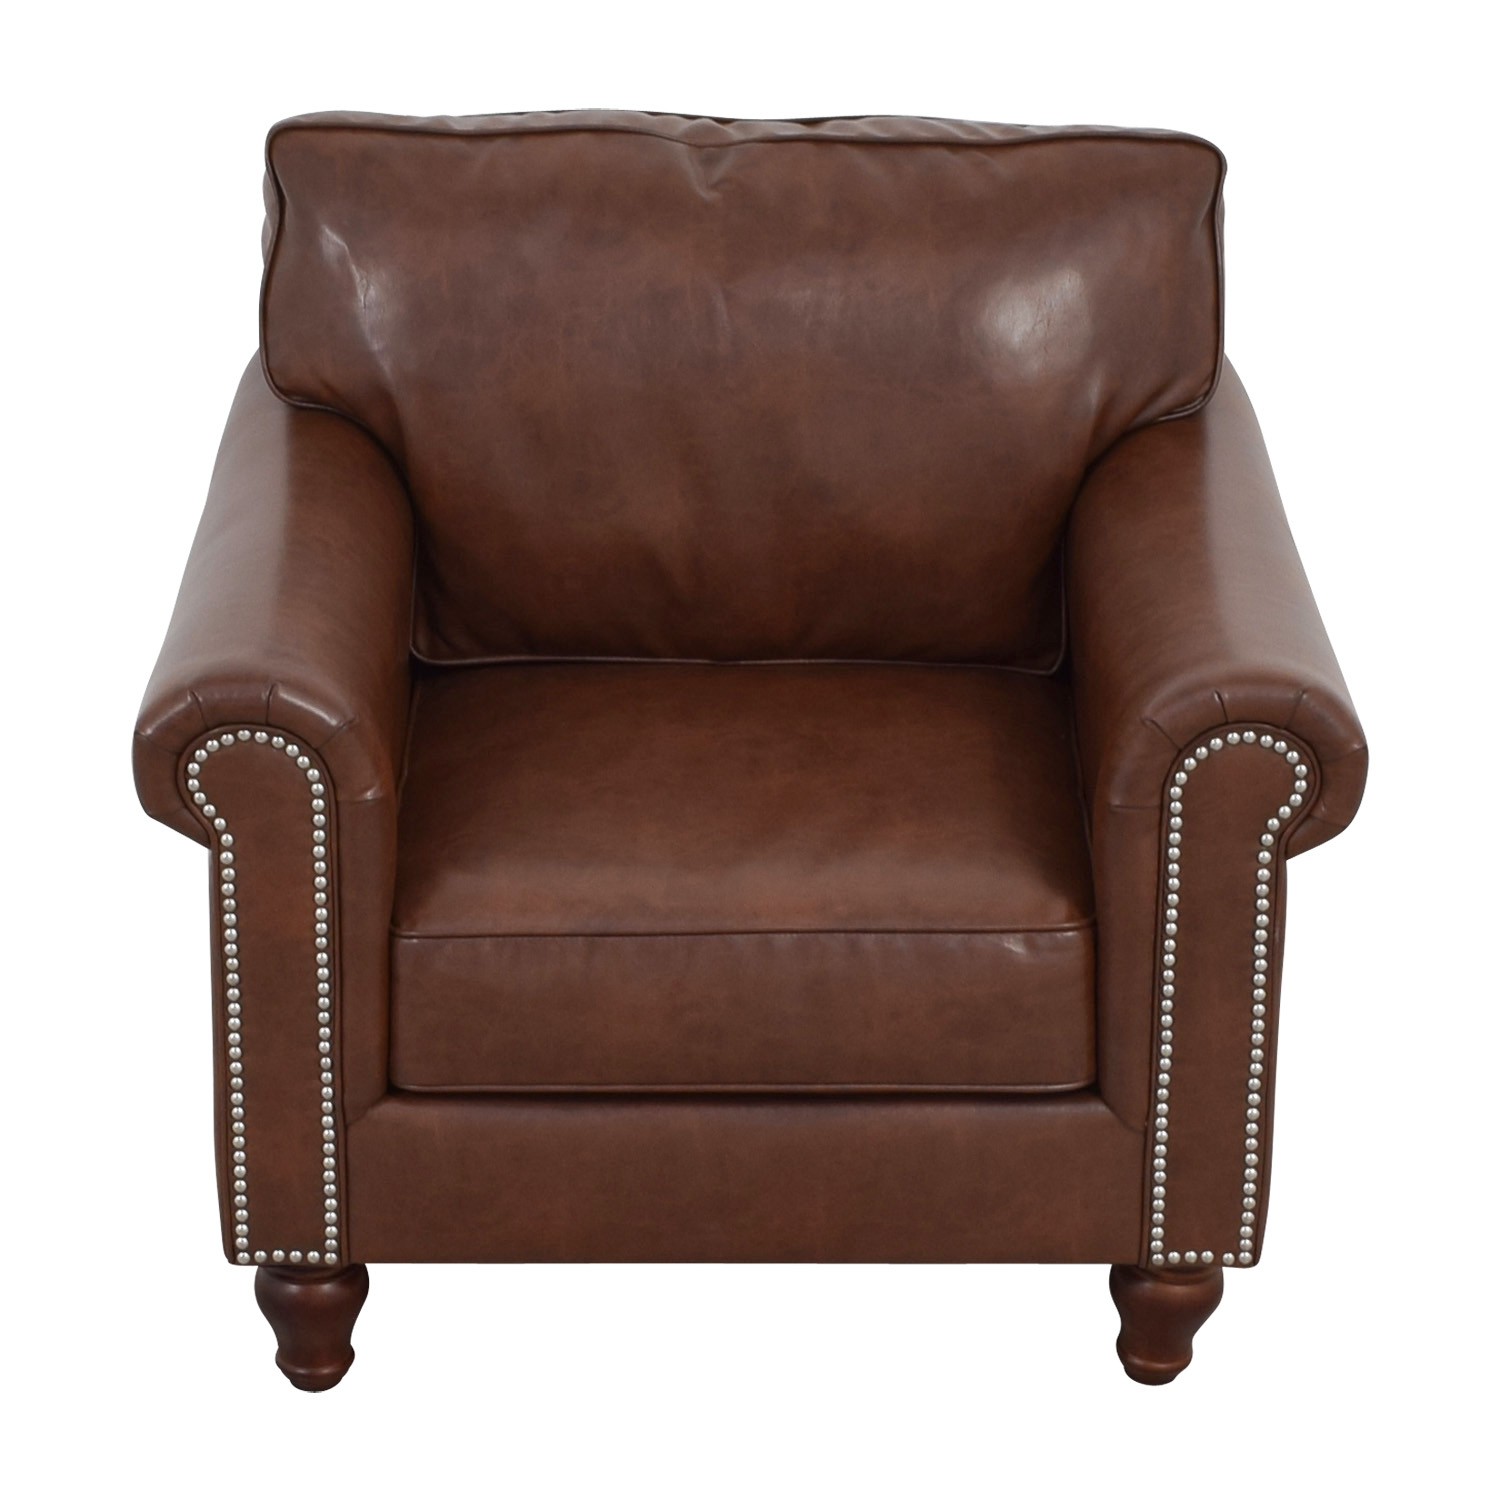 83% OFF - Pier 1 Pier 1 Imports Alton Tobacco Brown Rolled ...